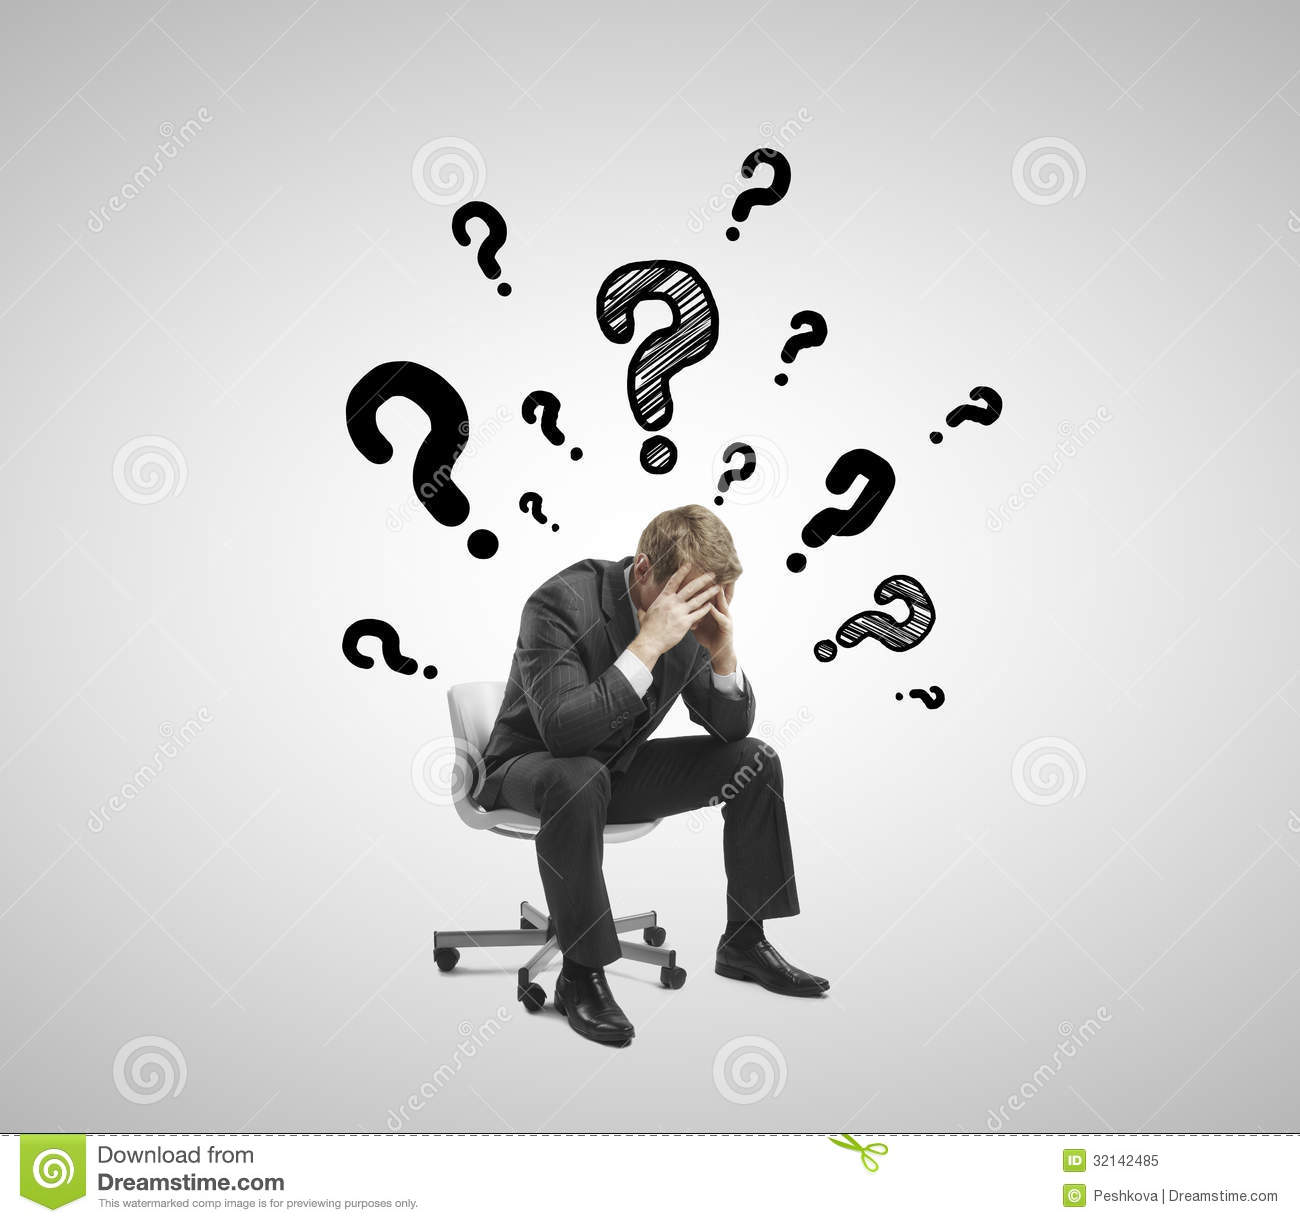 Sad Businessman Royalty Free Stock Photo - Image: 32142485